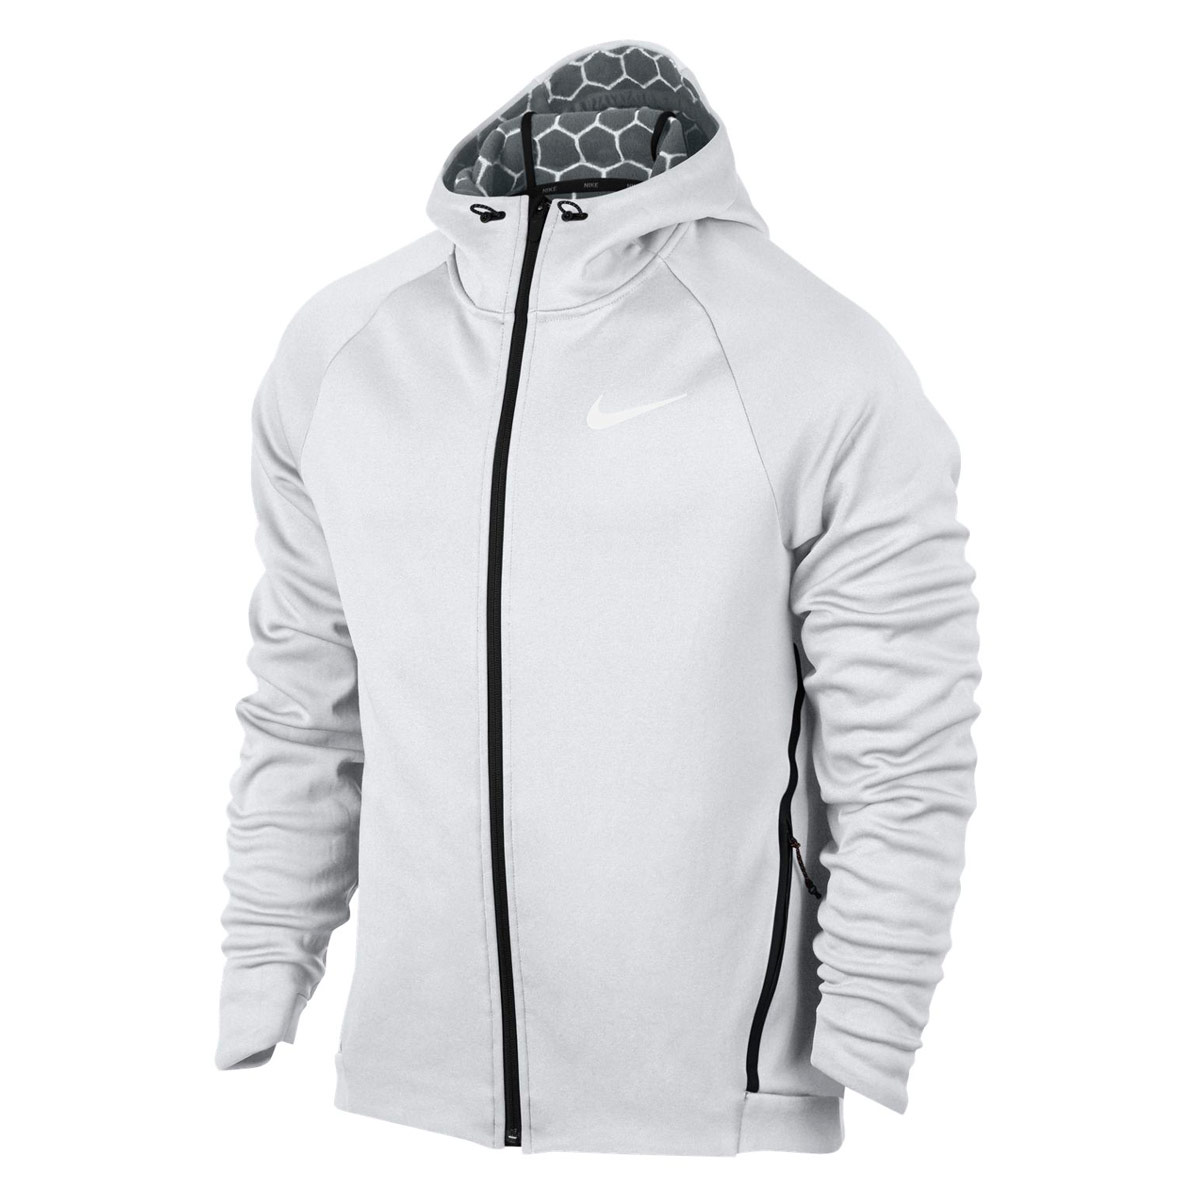 0c76c8a3df50 Nike Therma Sphere Max Training Hoodie - Running jackets for Men - White  21RUN ...